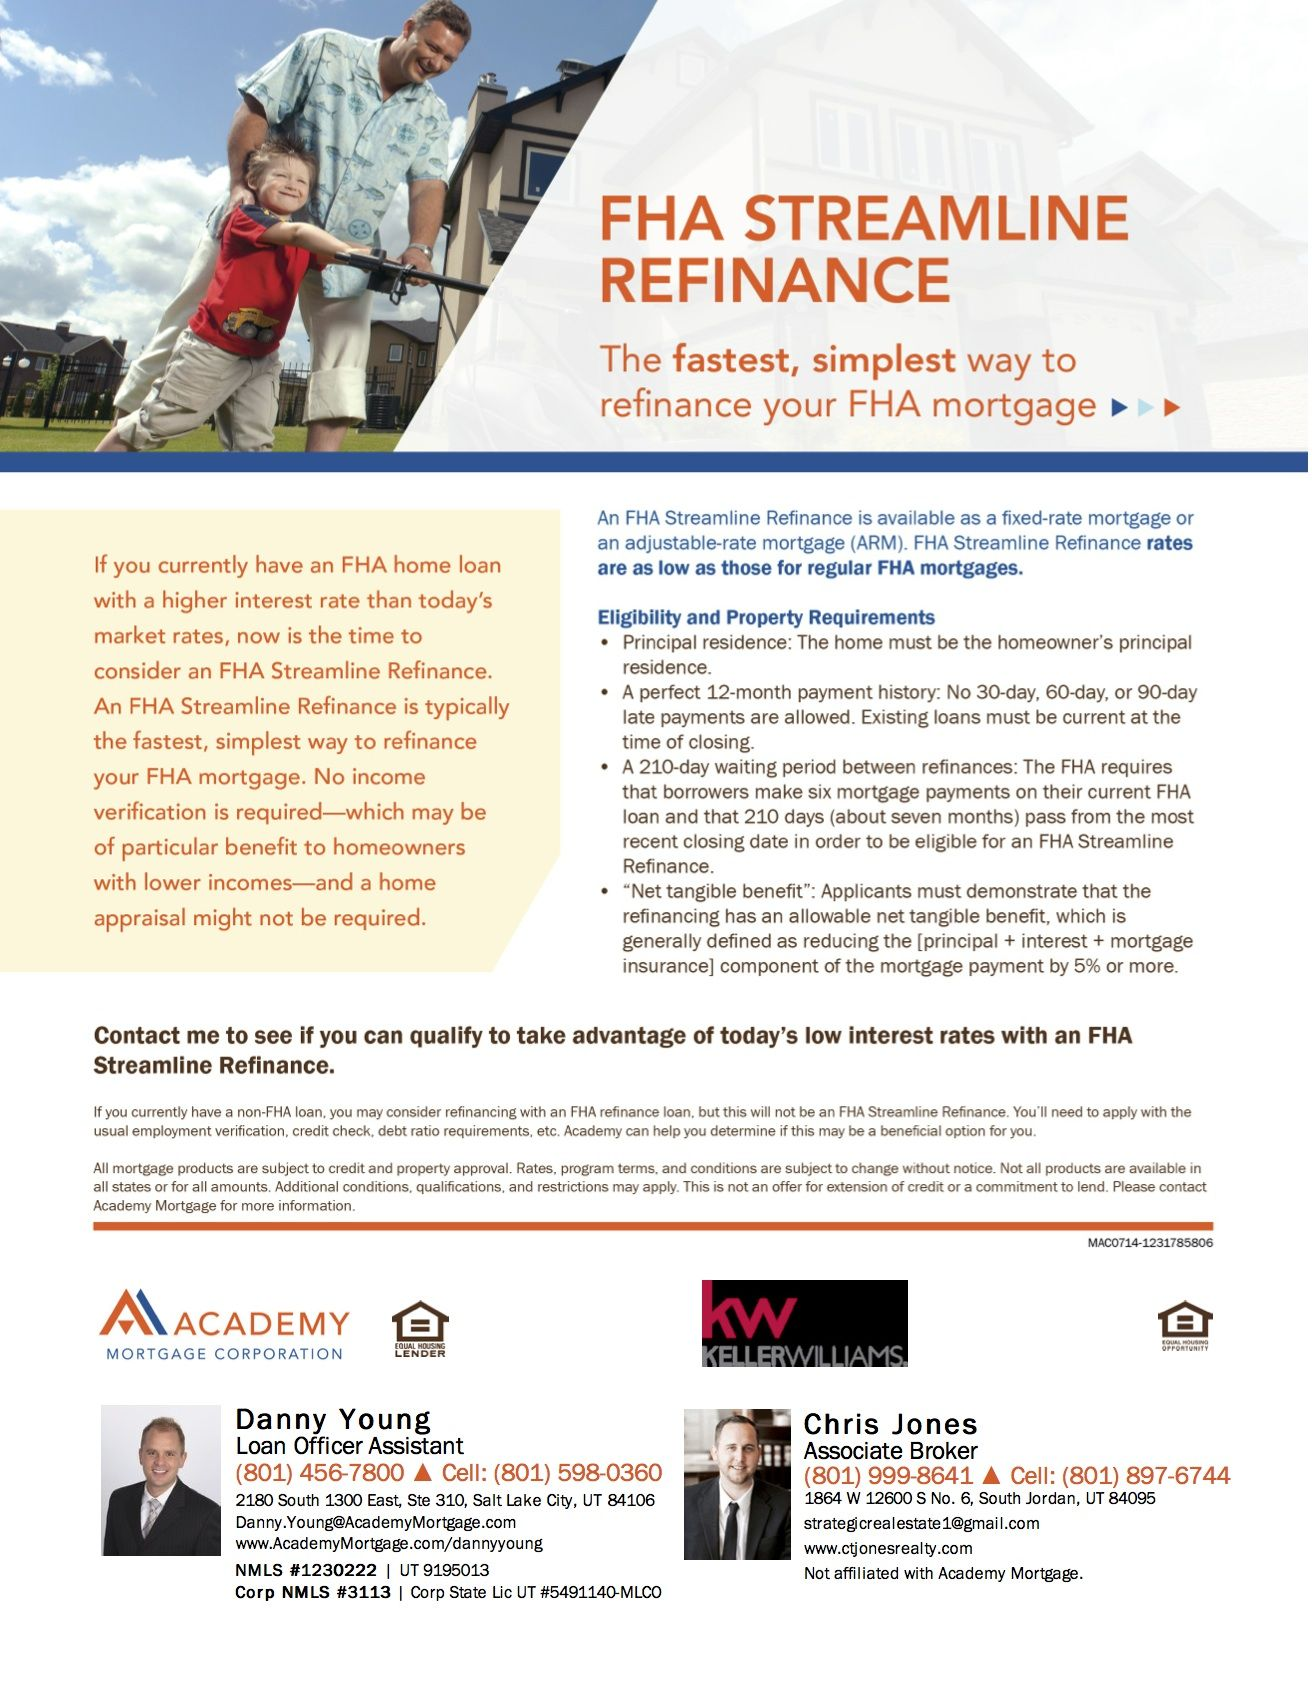 Find Out The Benefits And Eligibility Requirements Of An Fha Streamline Refinance Fha Streamline Refinance Fha Streamline Fha Mortgage